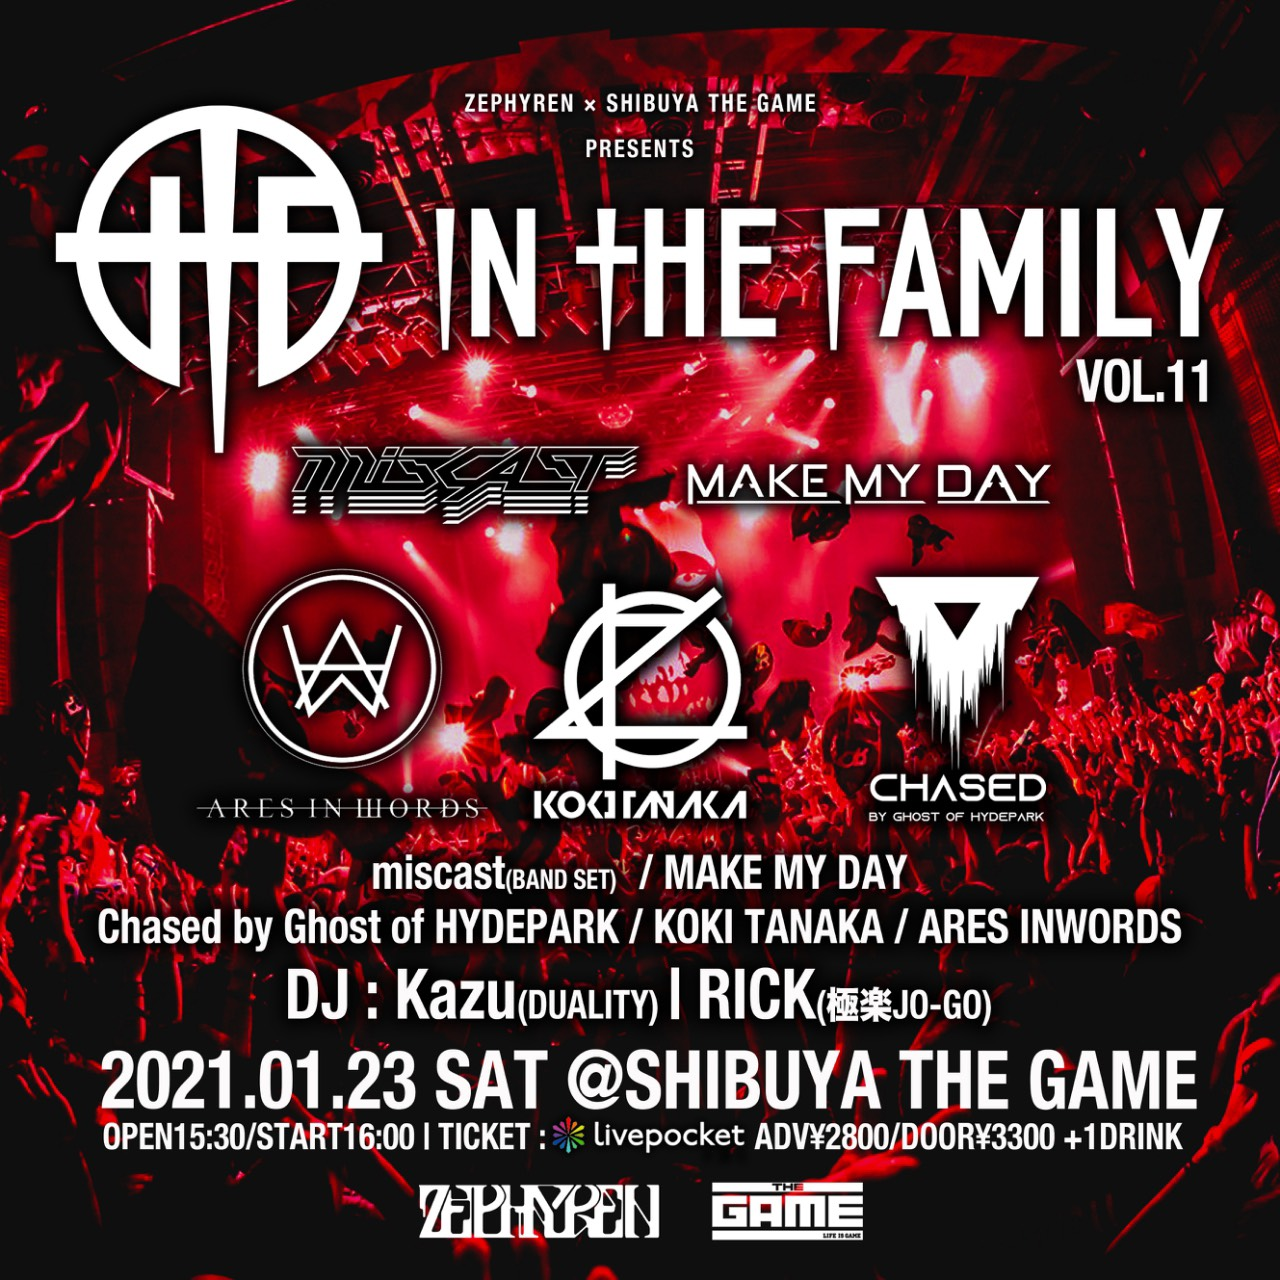 In The Family vol.11